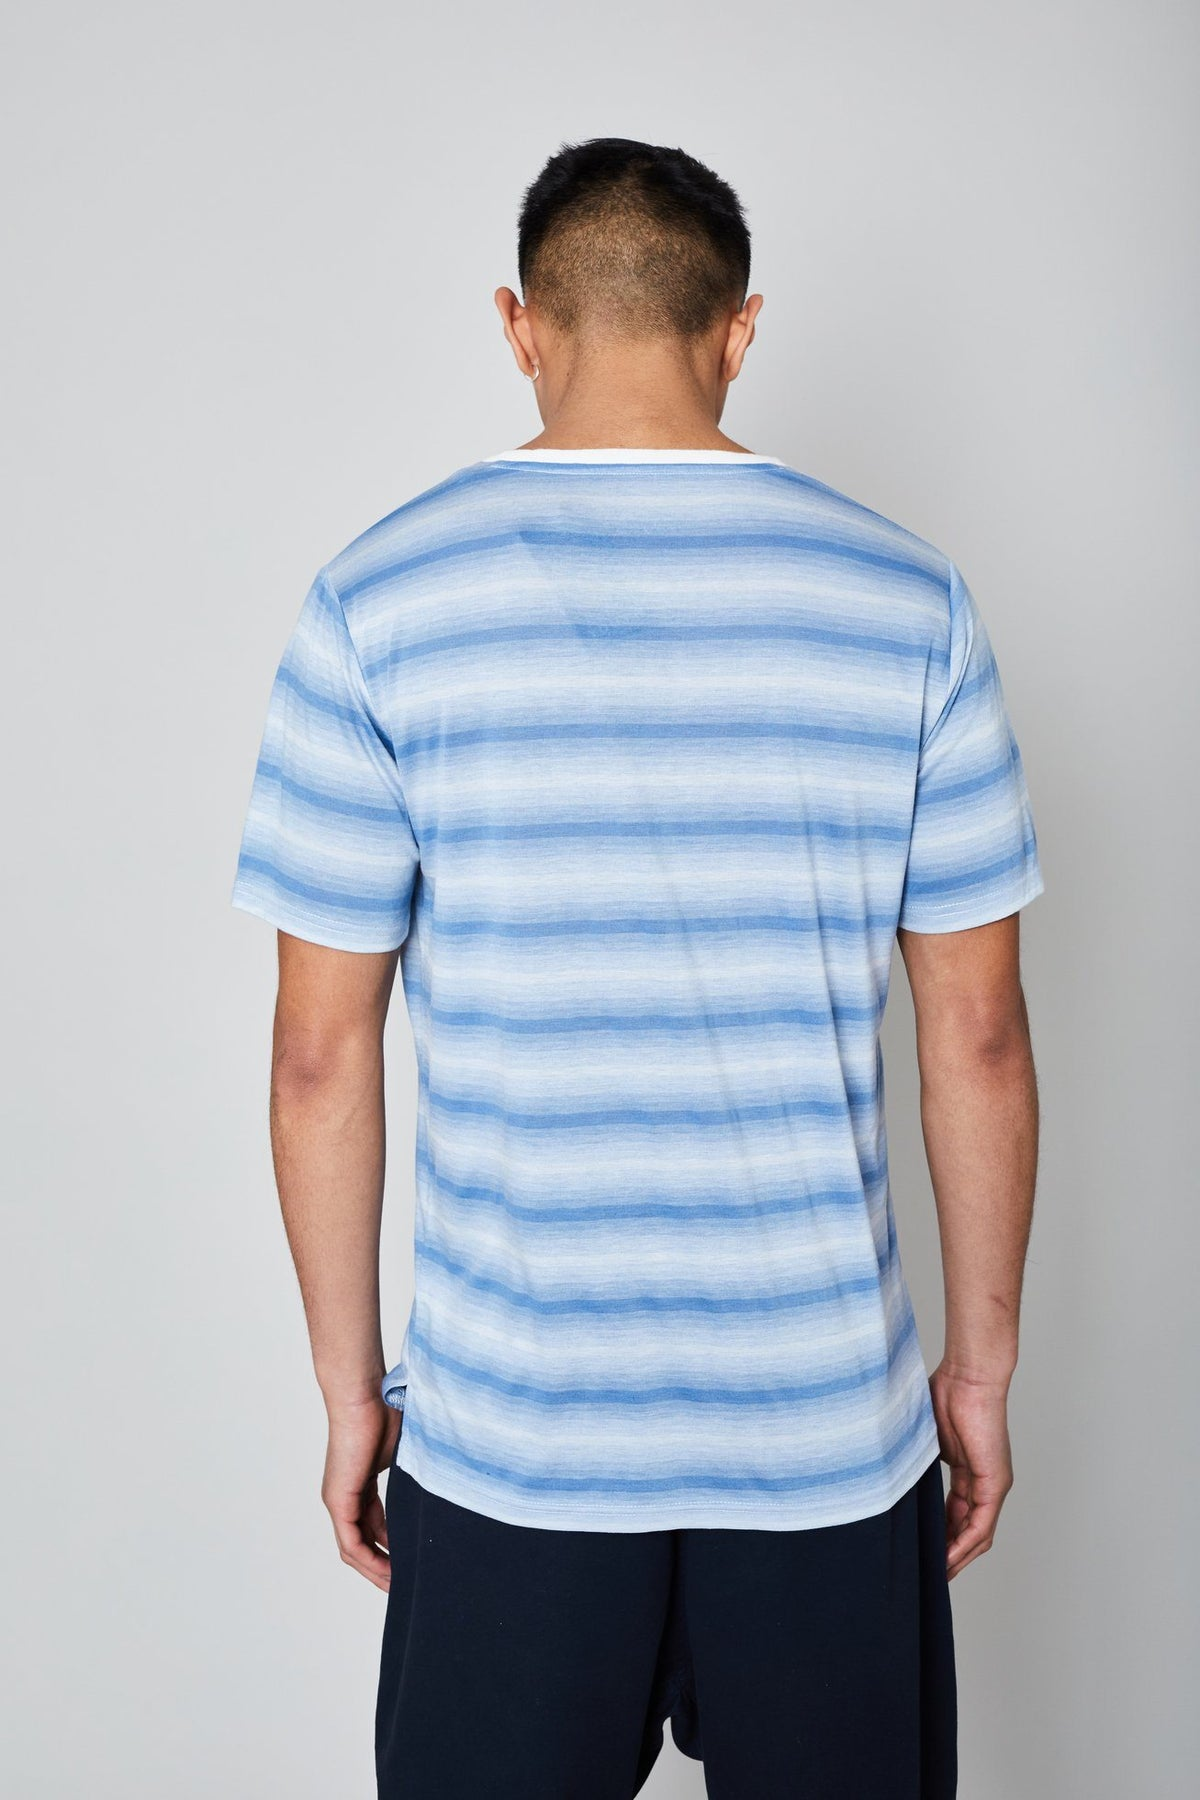 THE TOBI T-SHIRT